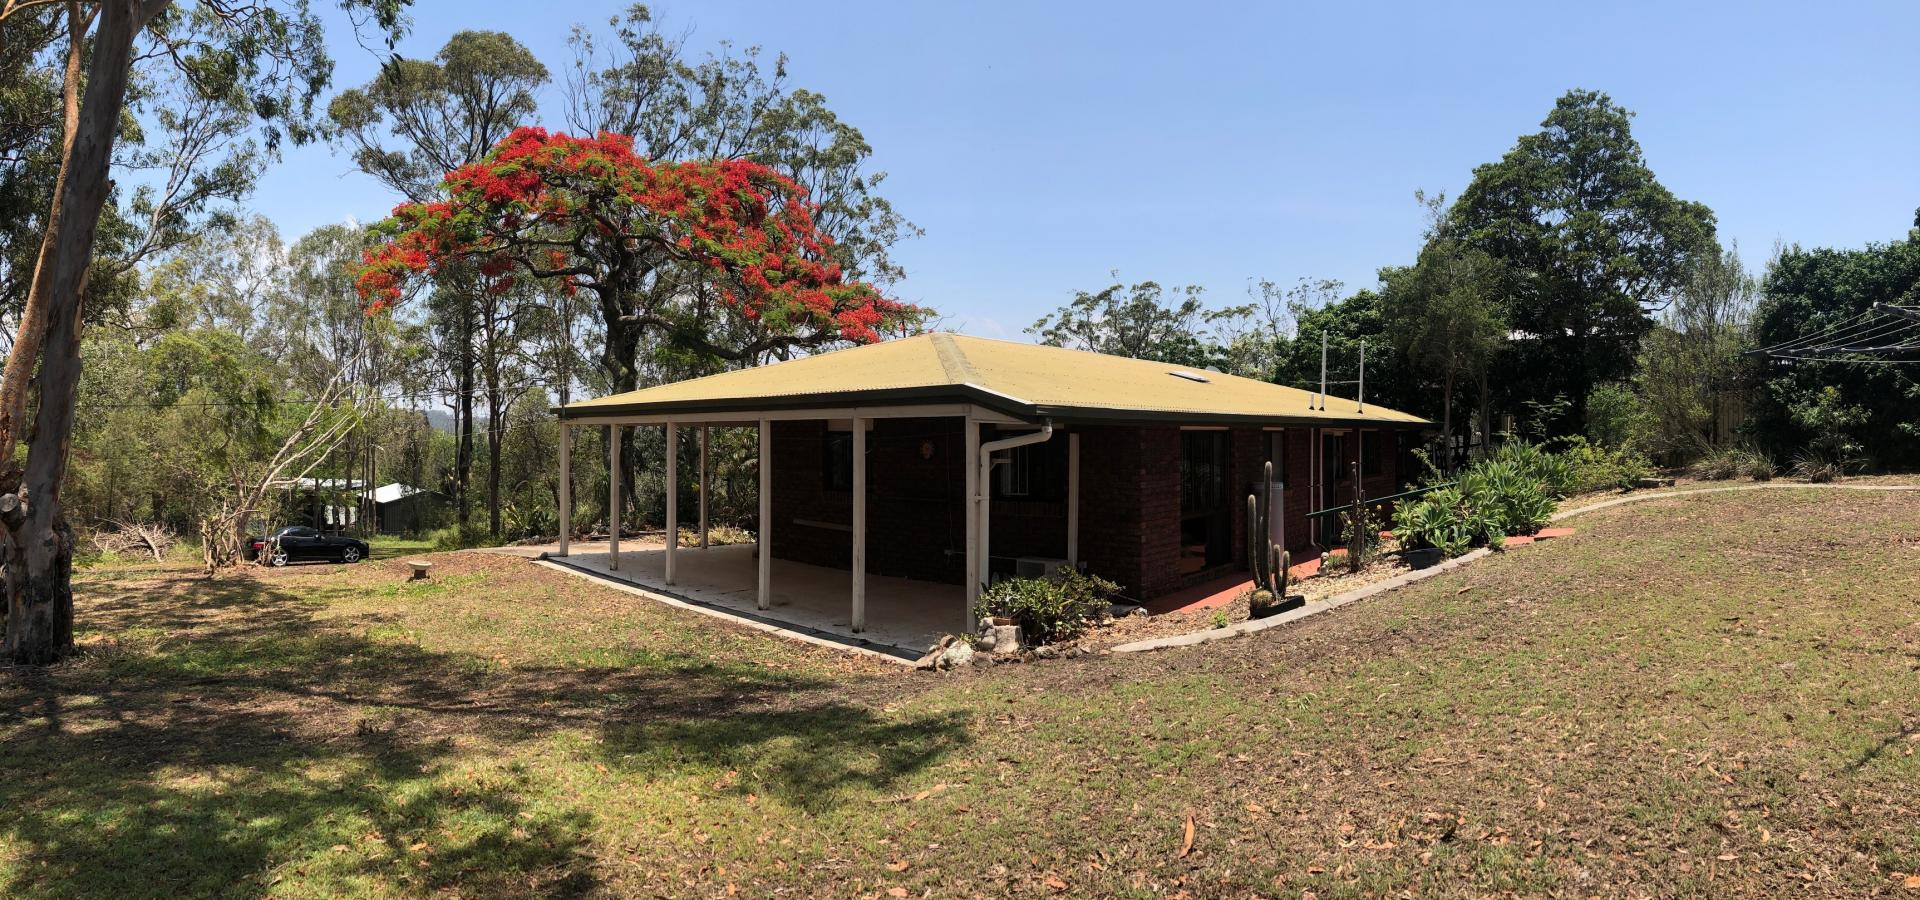 Belmont property with rural feel!Only 15 min from CBD